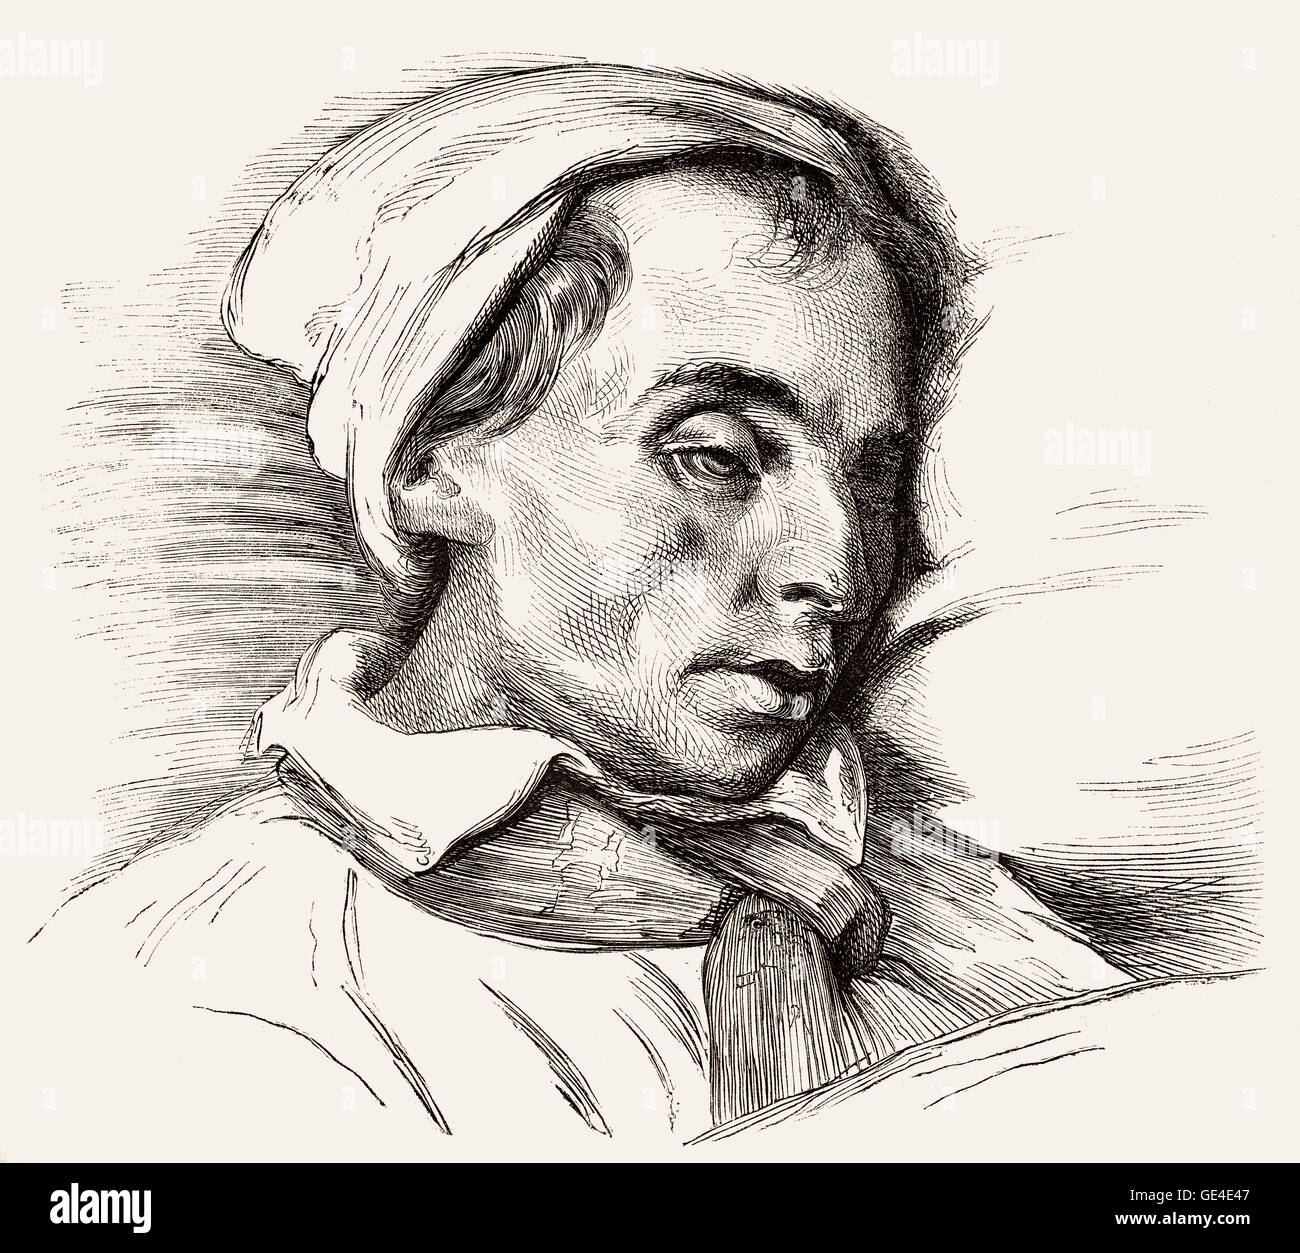 Louis Joseph Ferdinand Hérold, 1791-1833, French operatic composer, at the deathbed - Stock Image